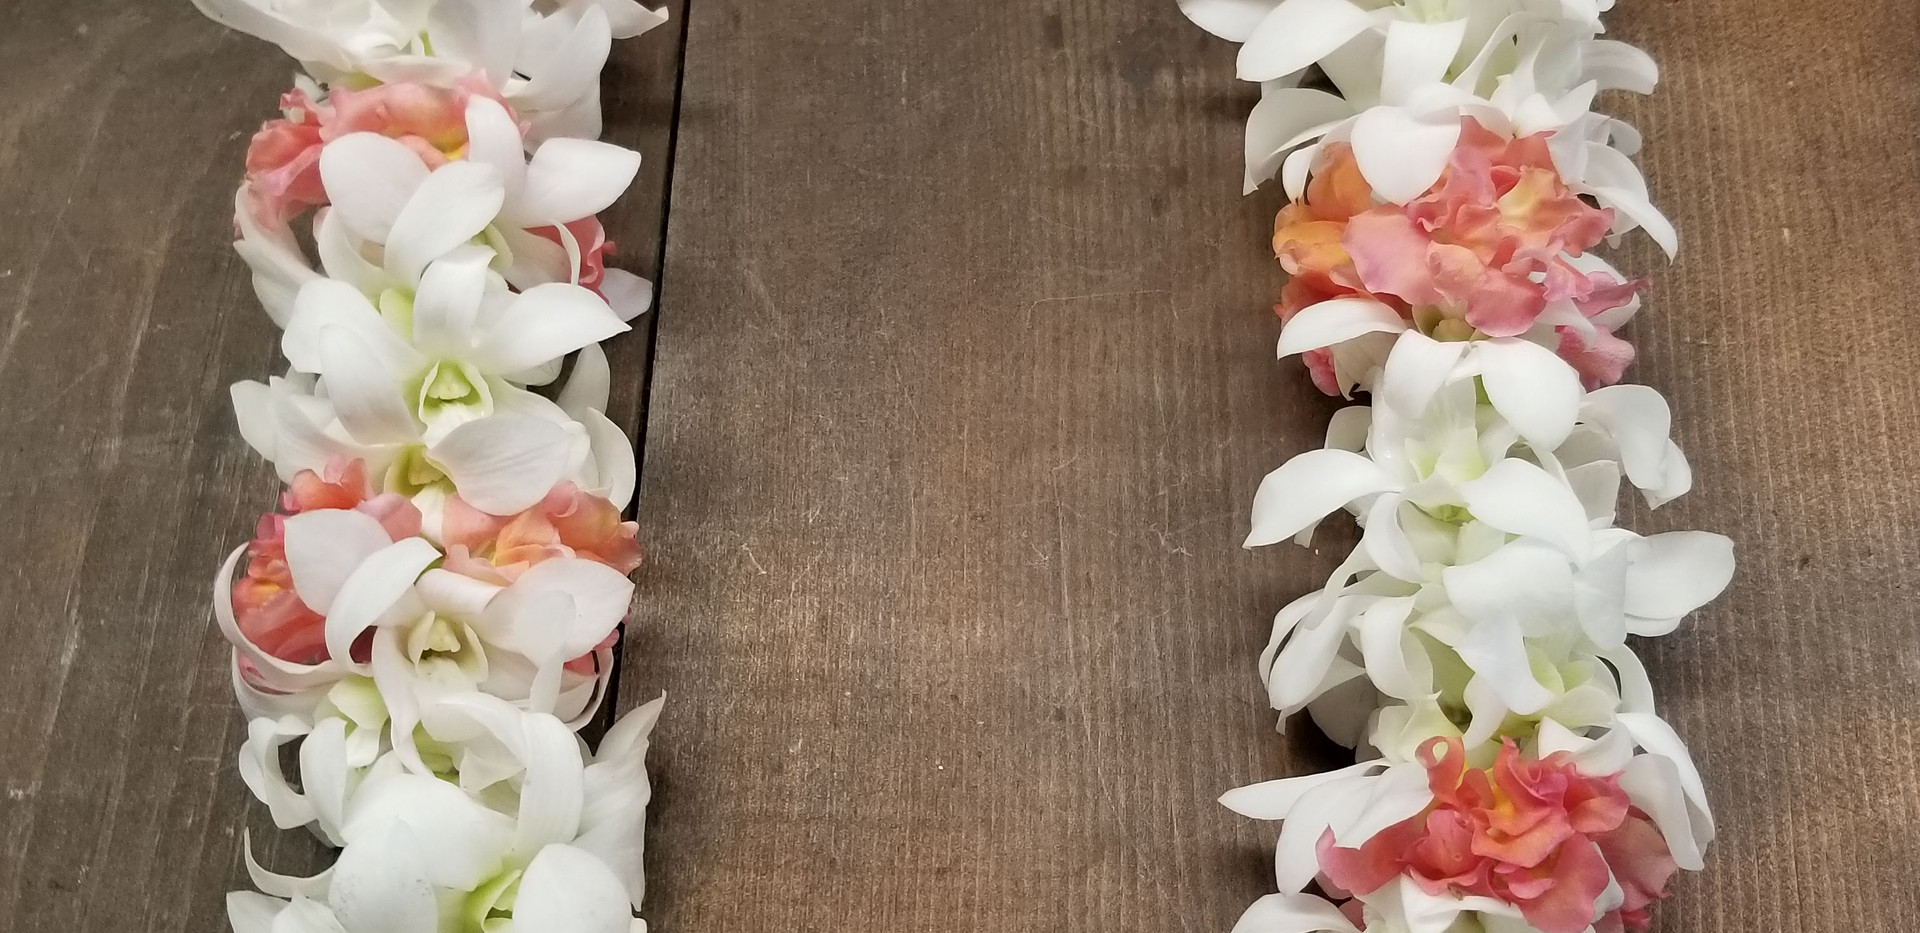 Rope-style orchid and bougainvillea leinvillea lei